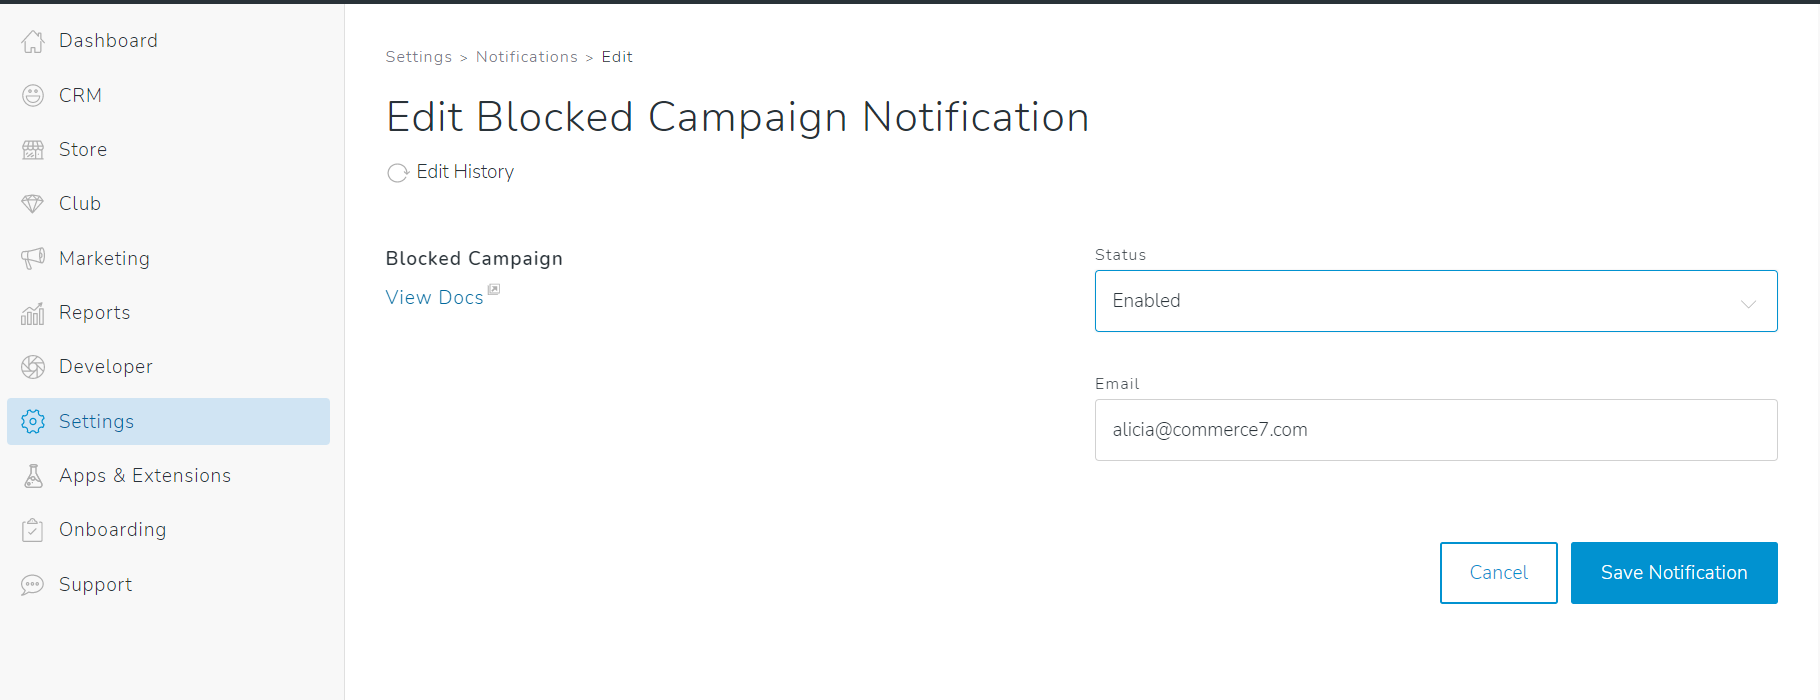 Commerce7-Edit-Blocked-Campaign-Notification